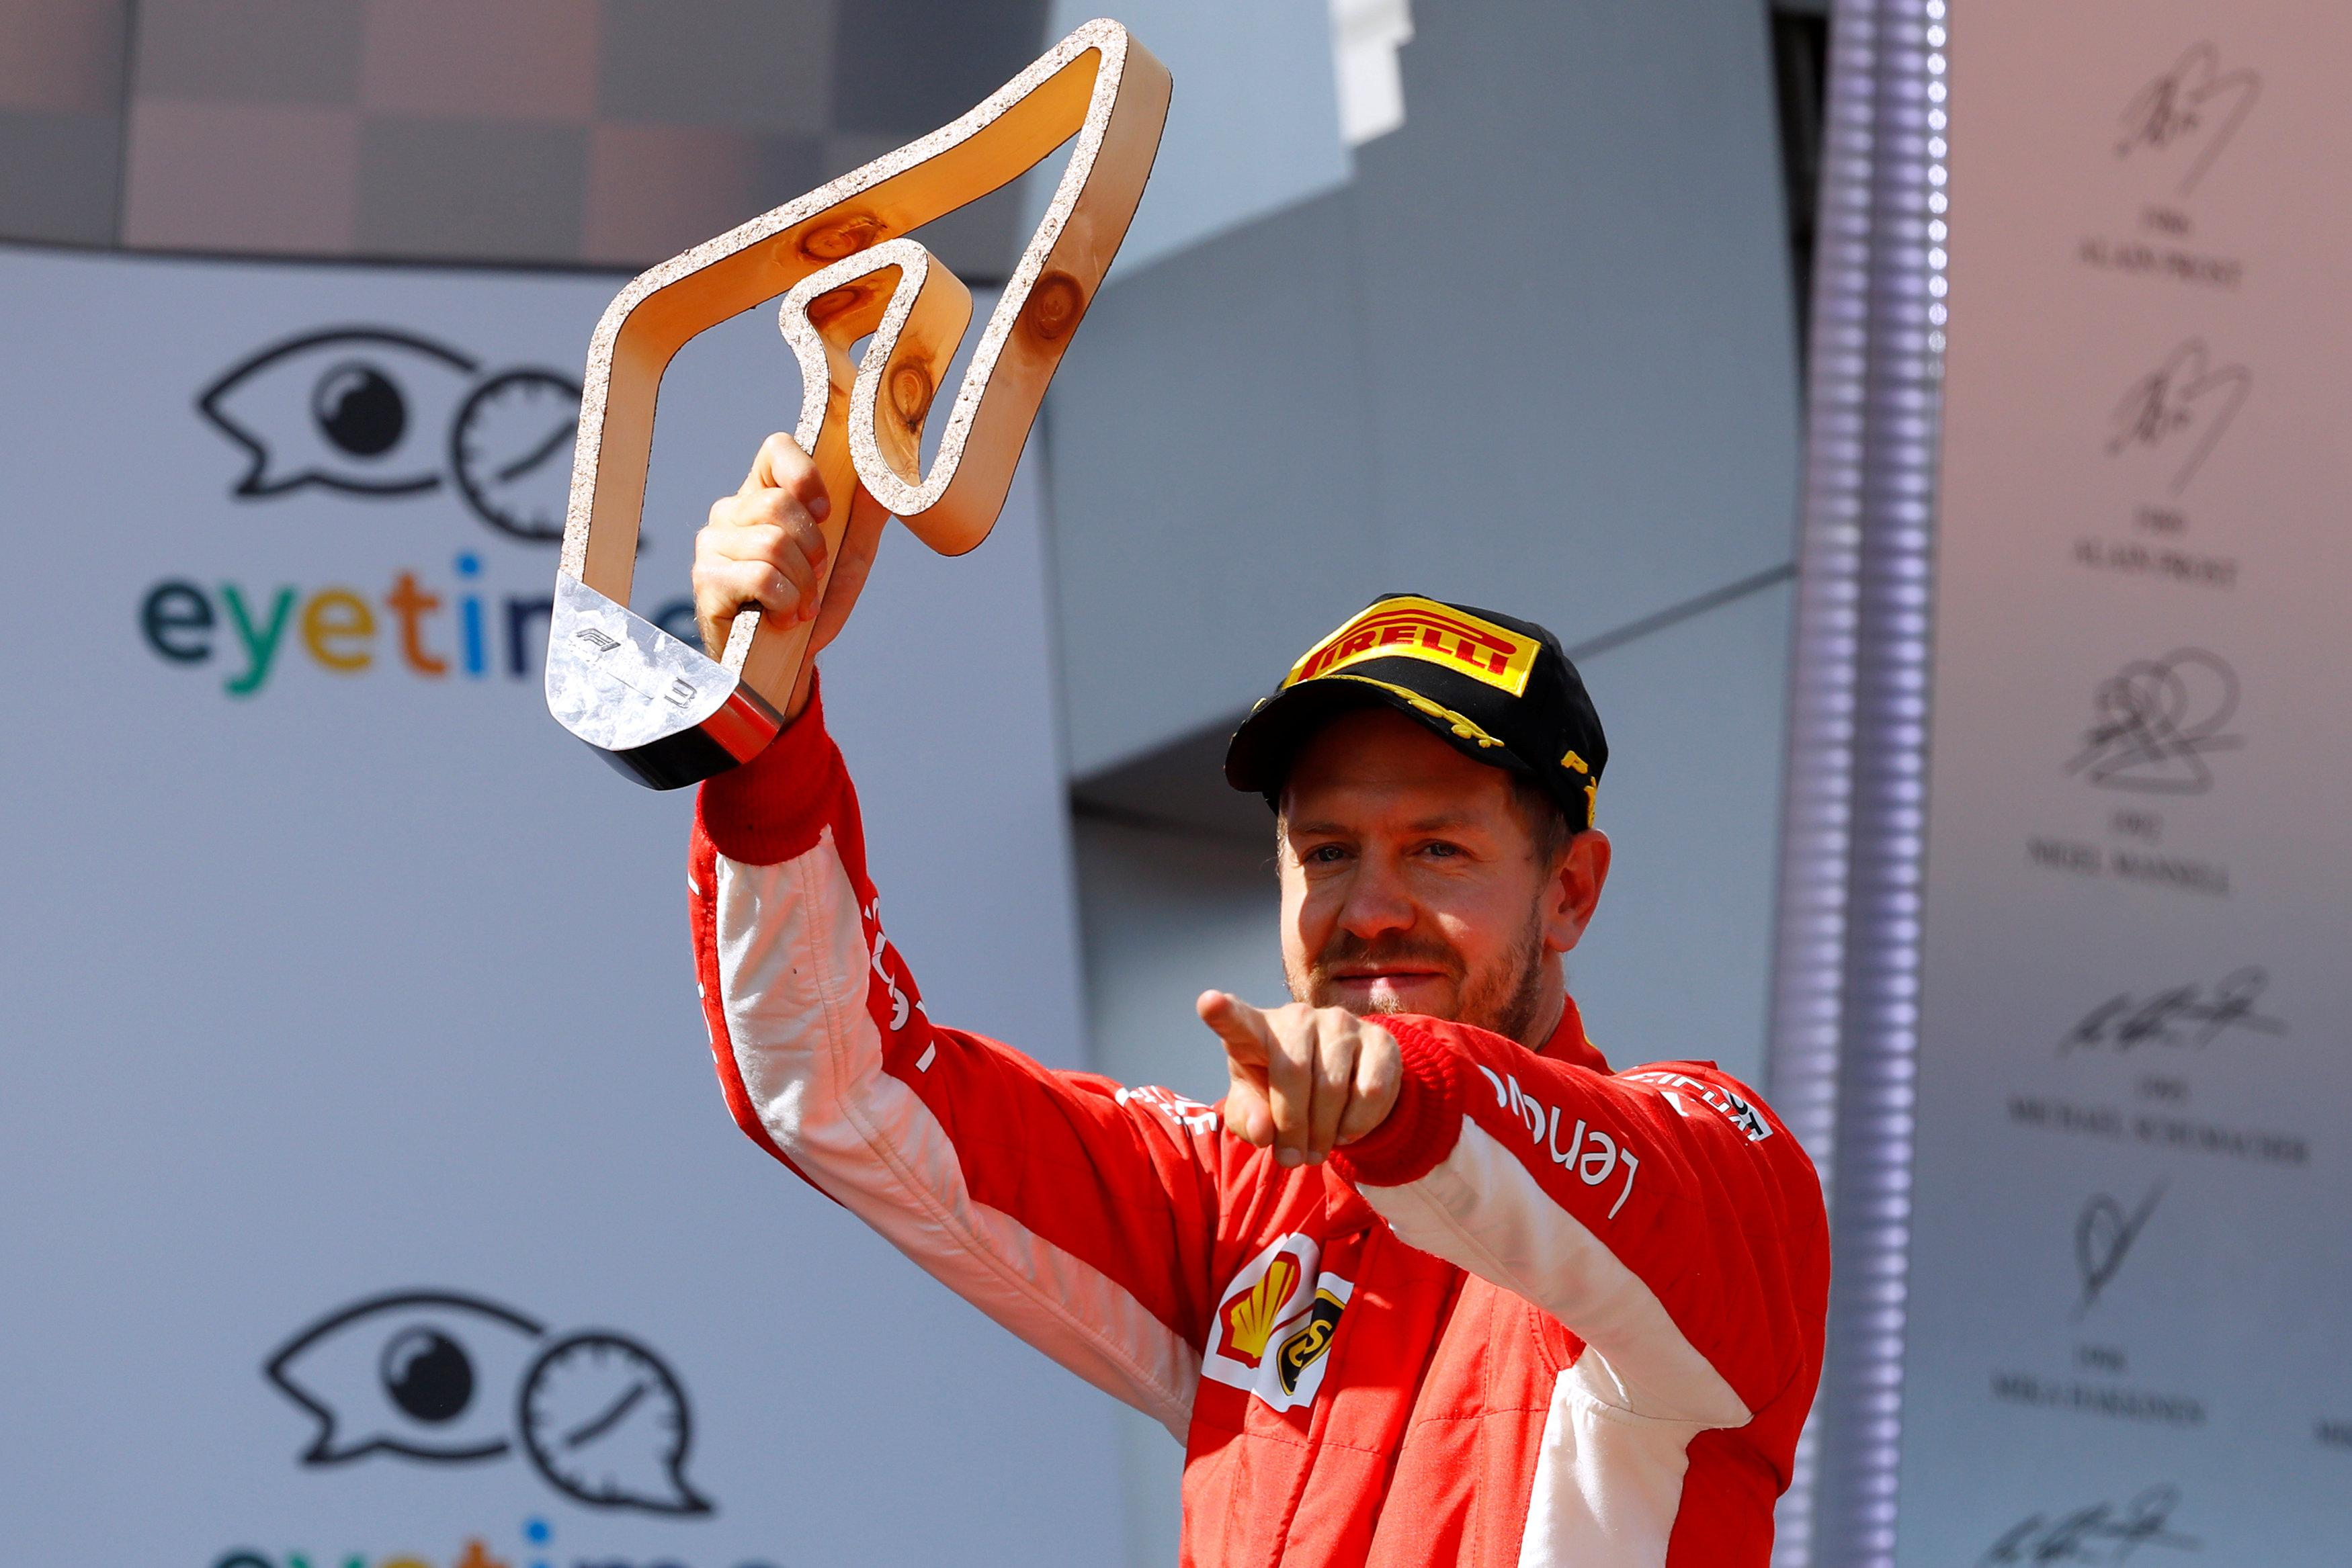 Vettel took third place and the championship lead back by a single point from Hamilton